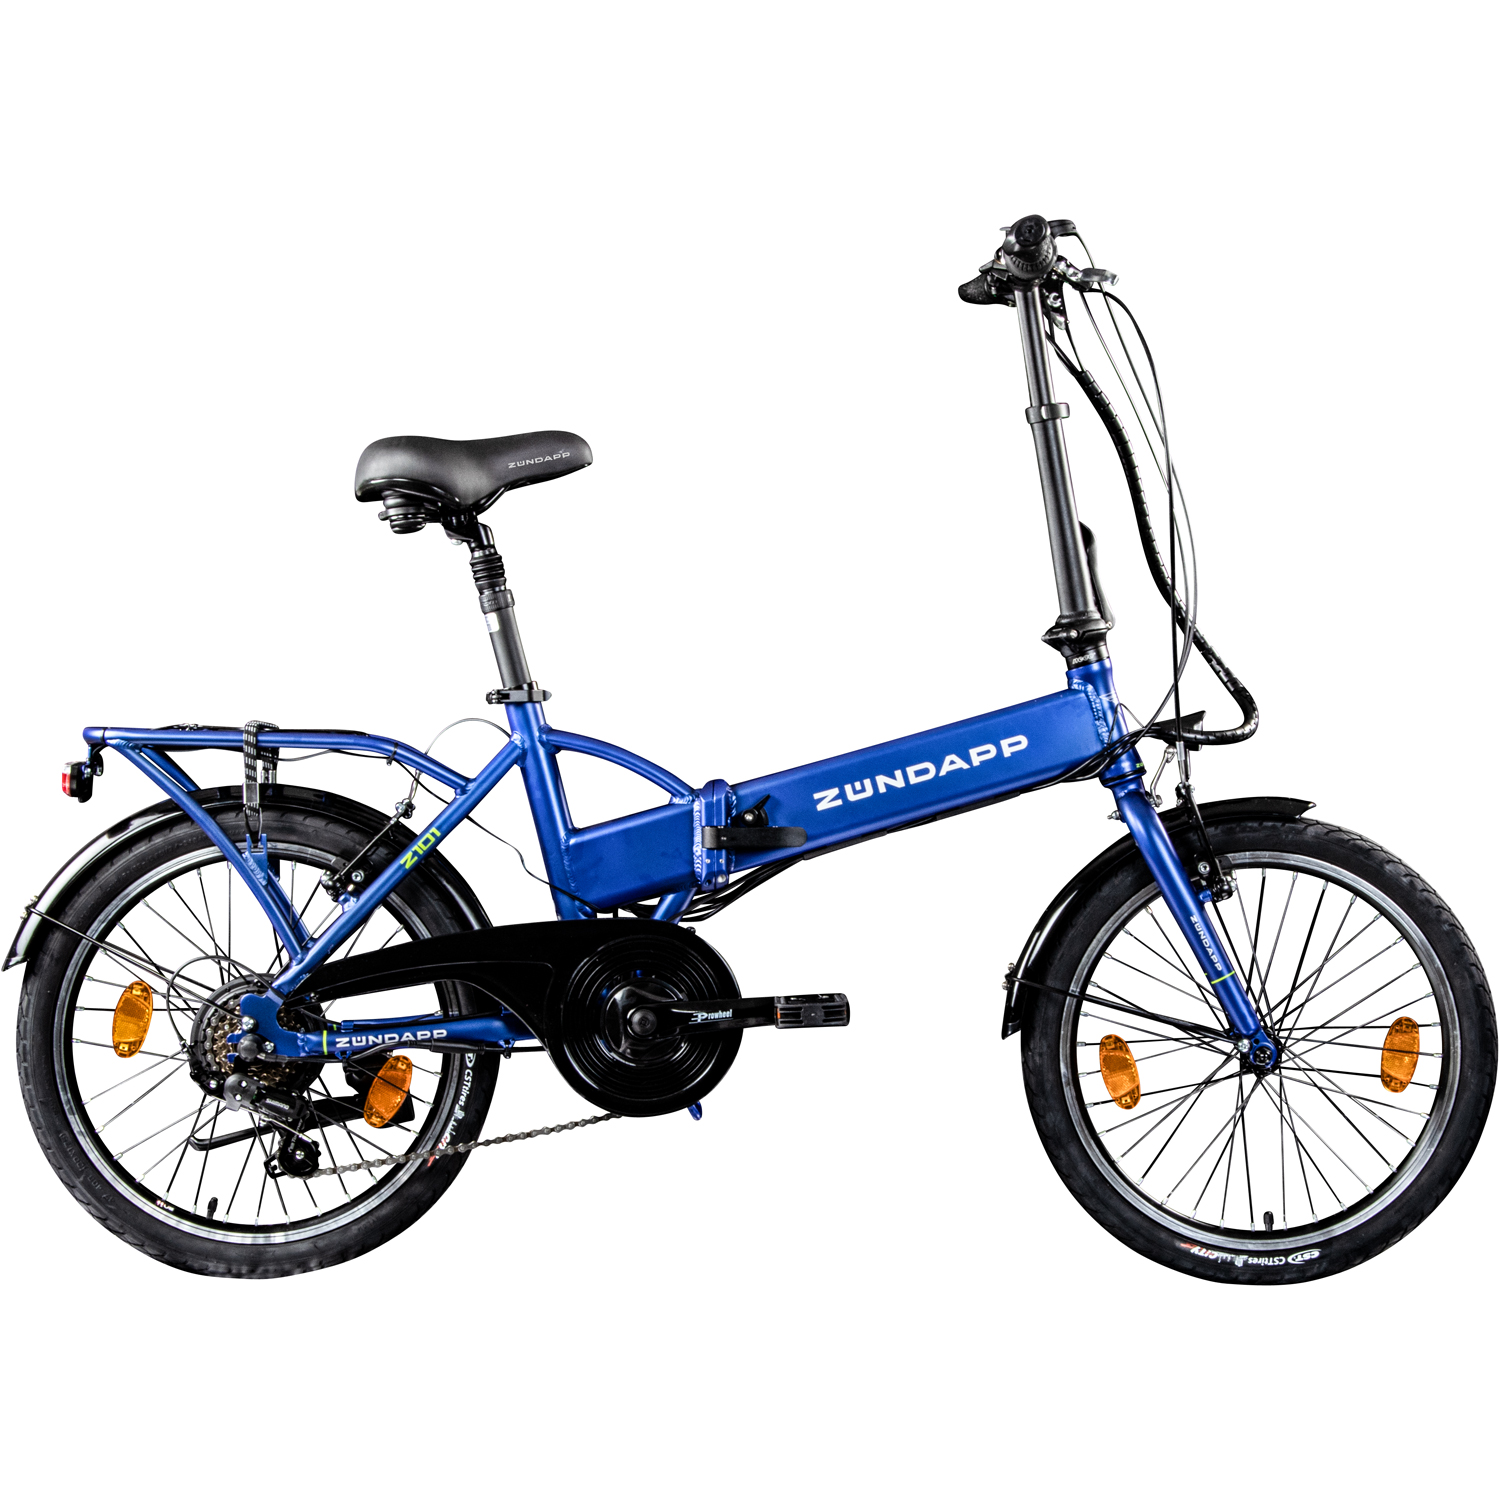 folding e bike 20 inches z ndapp z101 bike pedelec stvzo electric bicycle 6 gang ebay. Black Bedroom Furniture Sets. Home Design Ideas